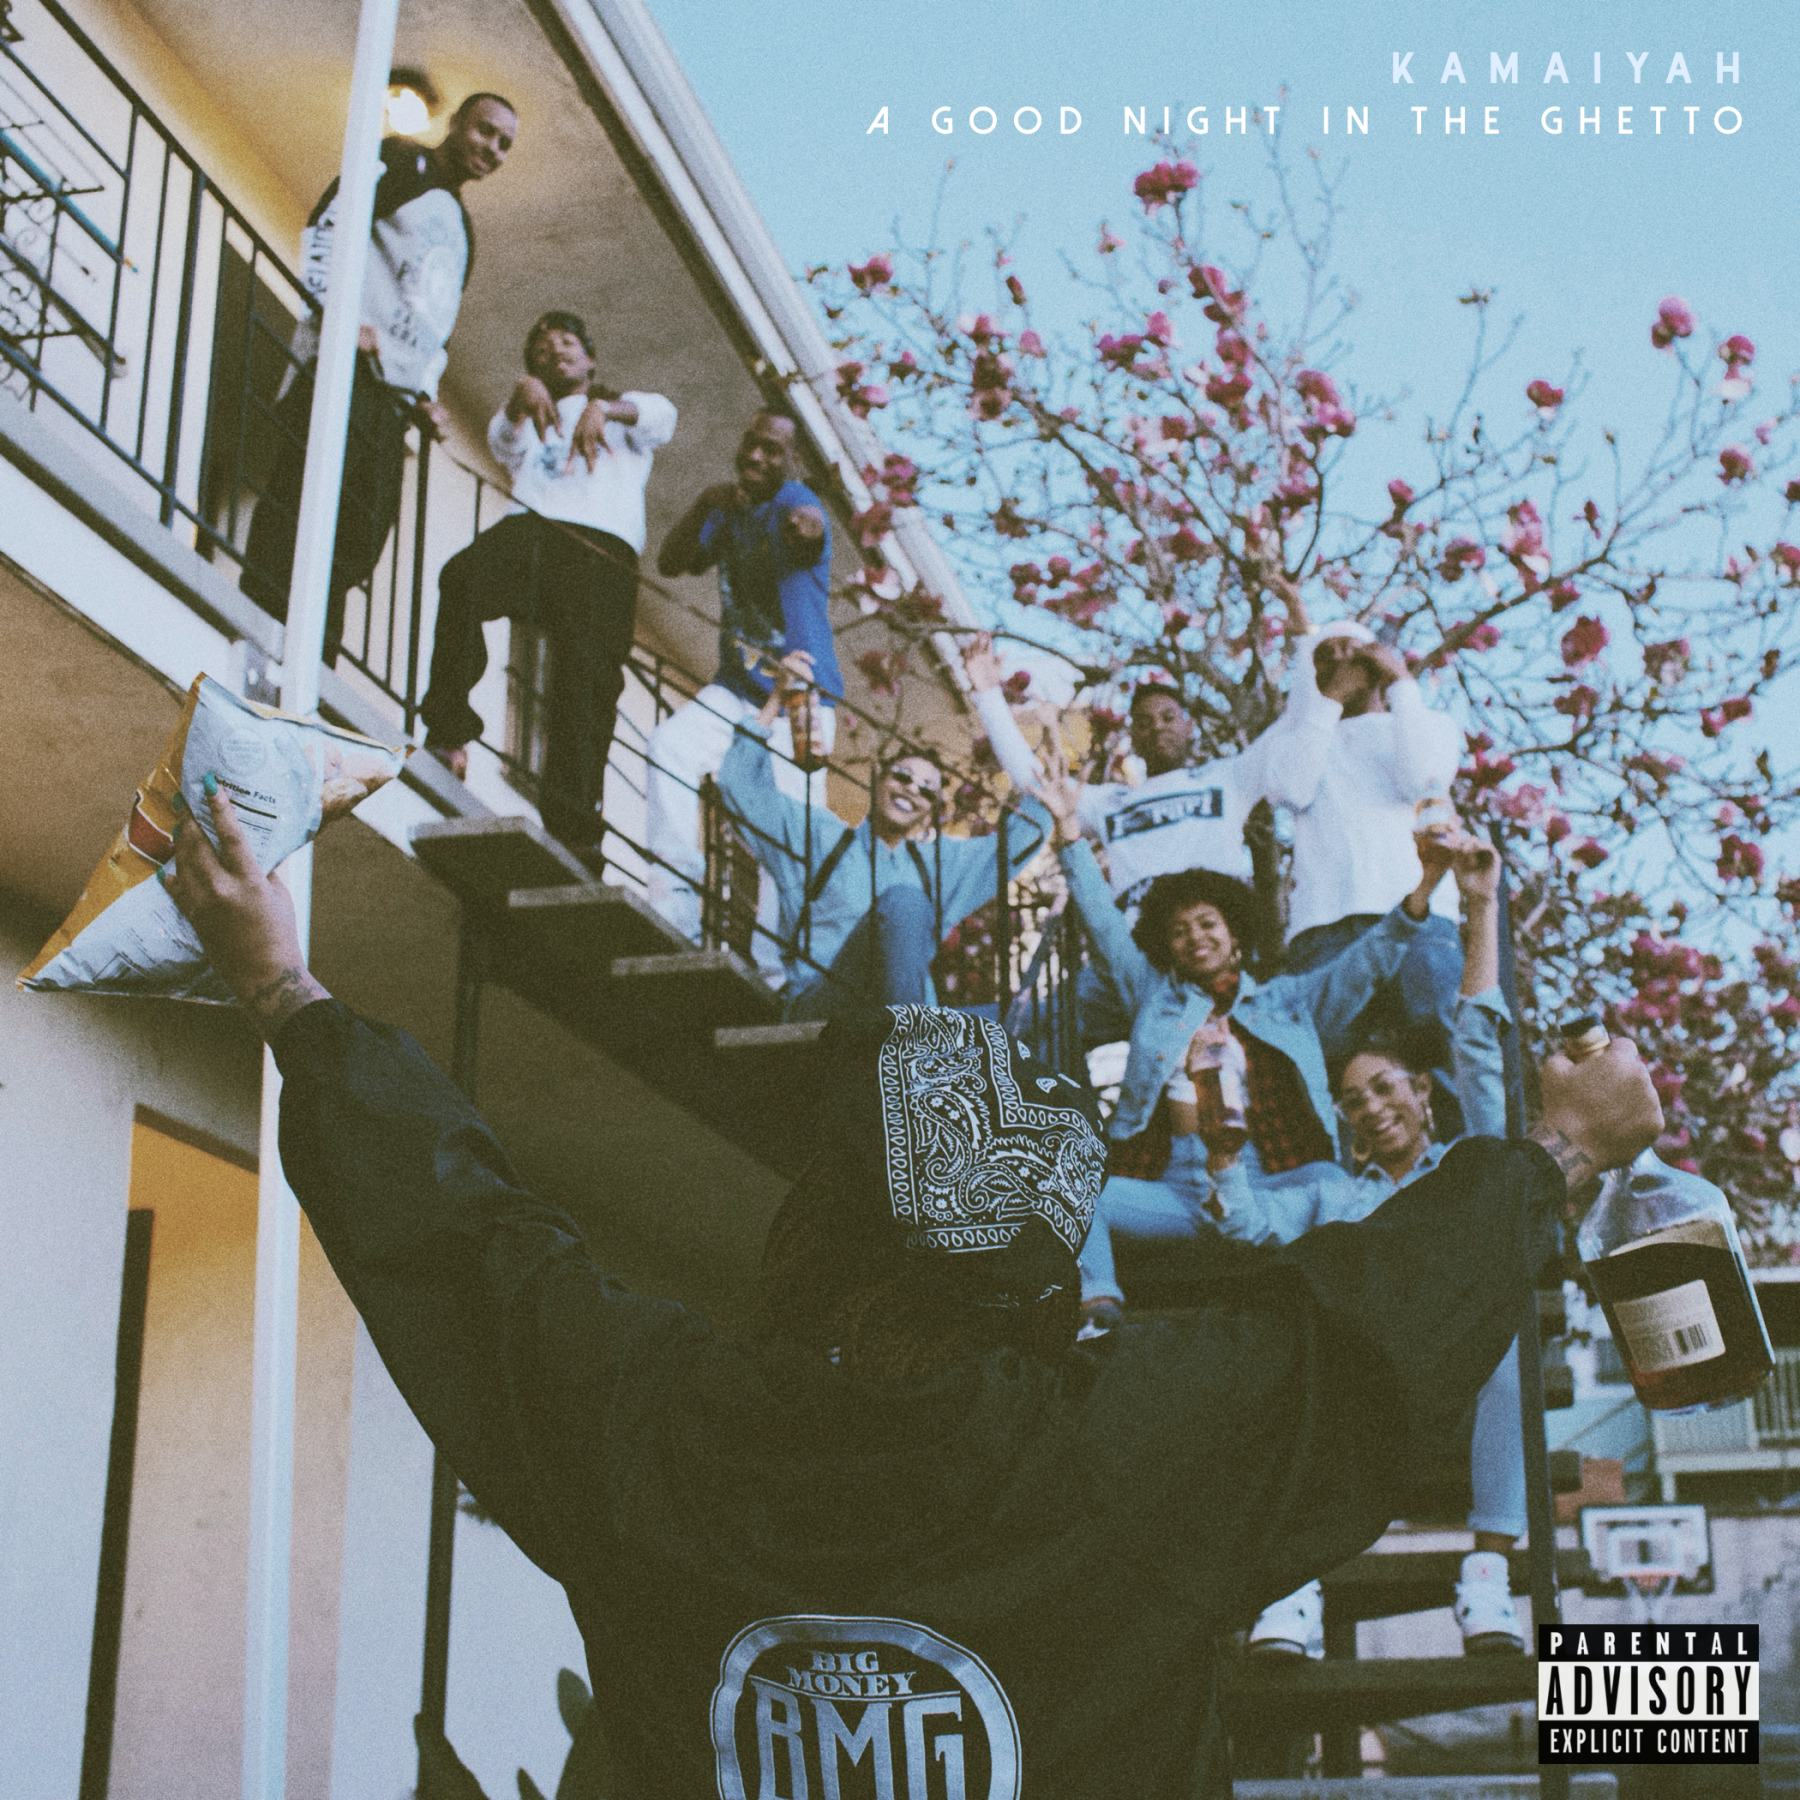 A Good Night in the Ghetto - Kamaiyah